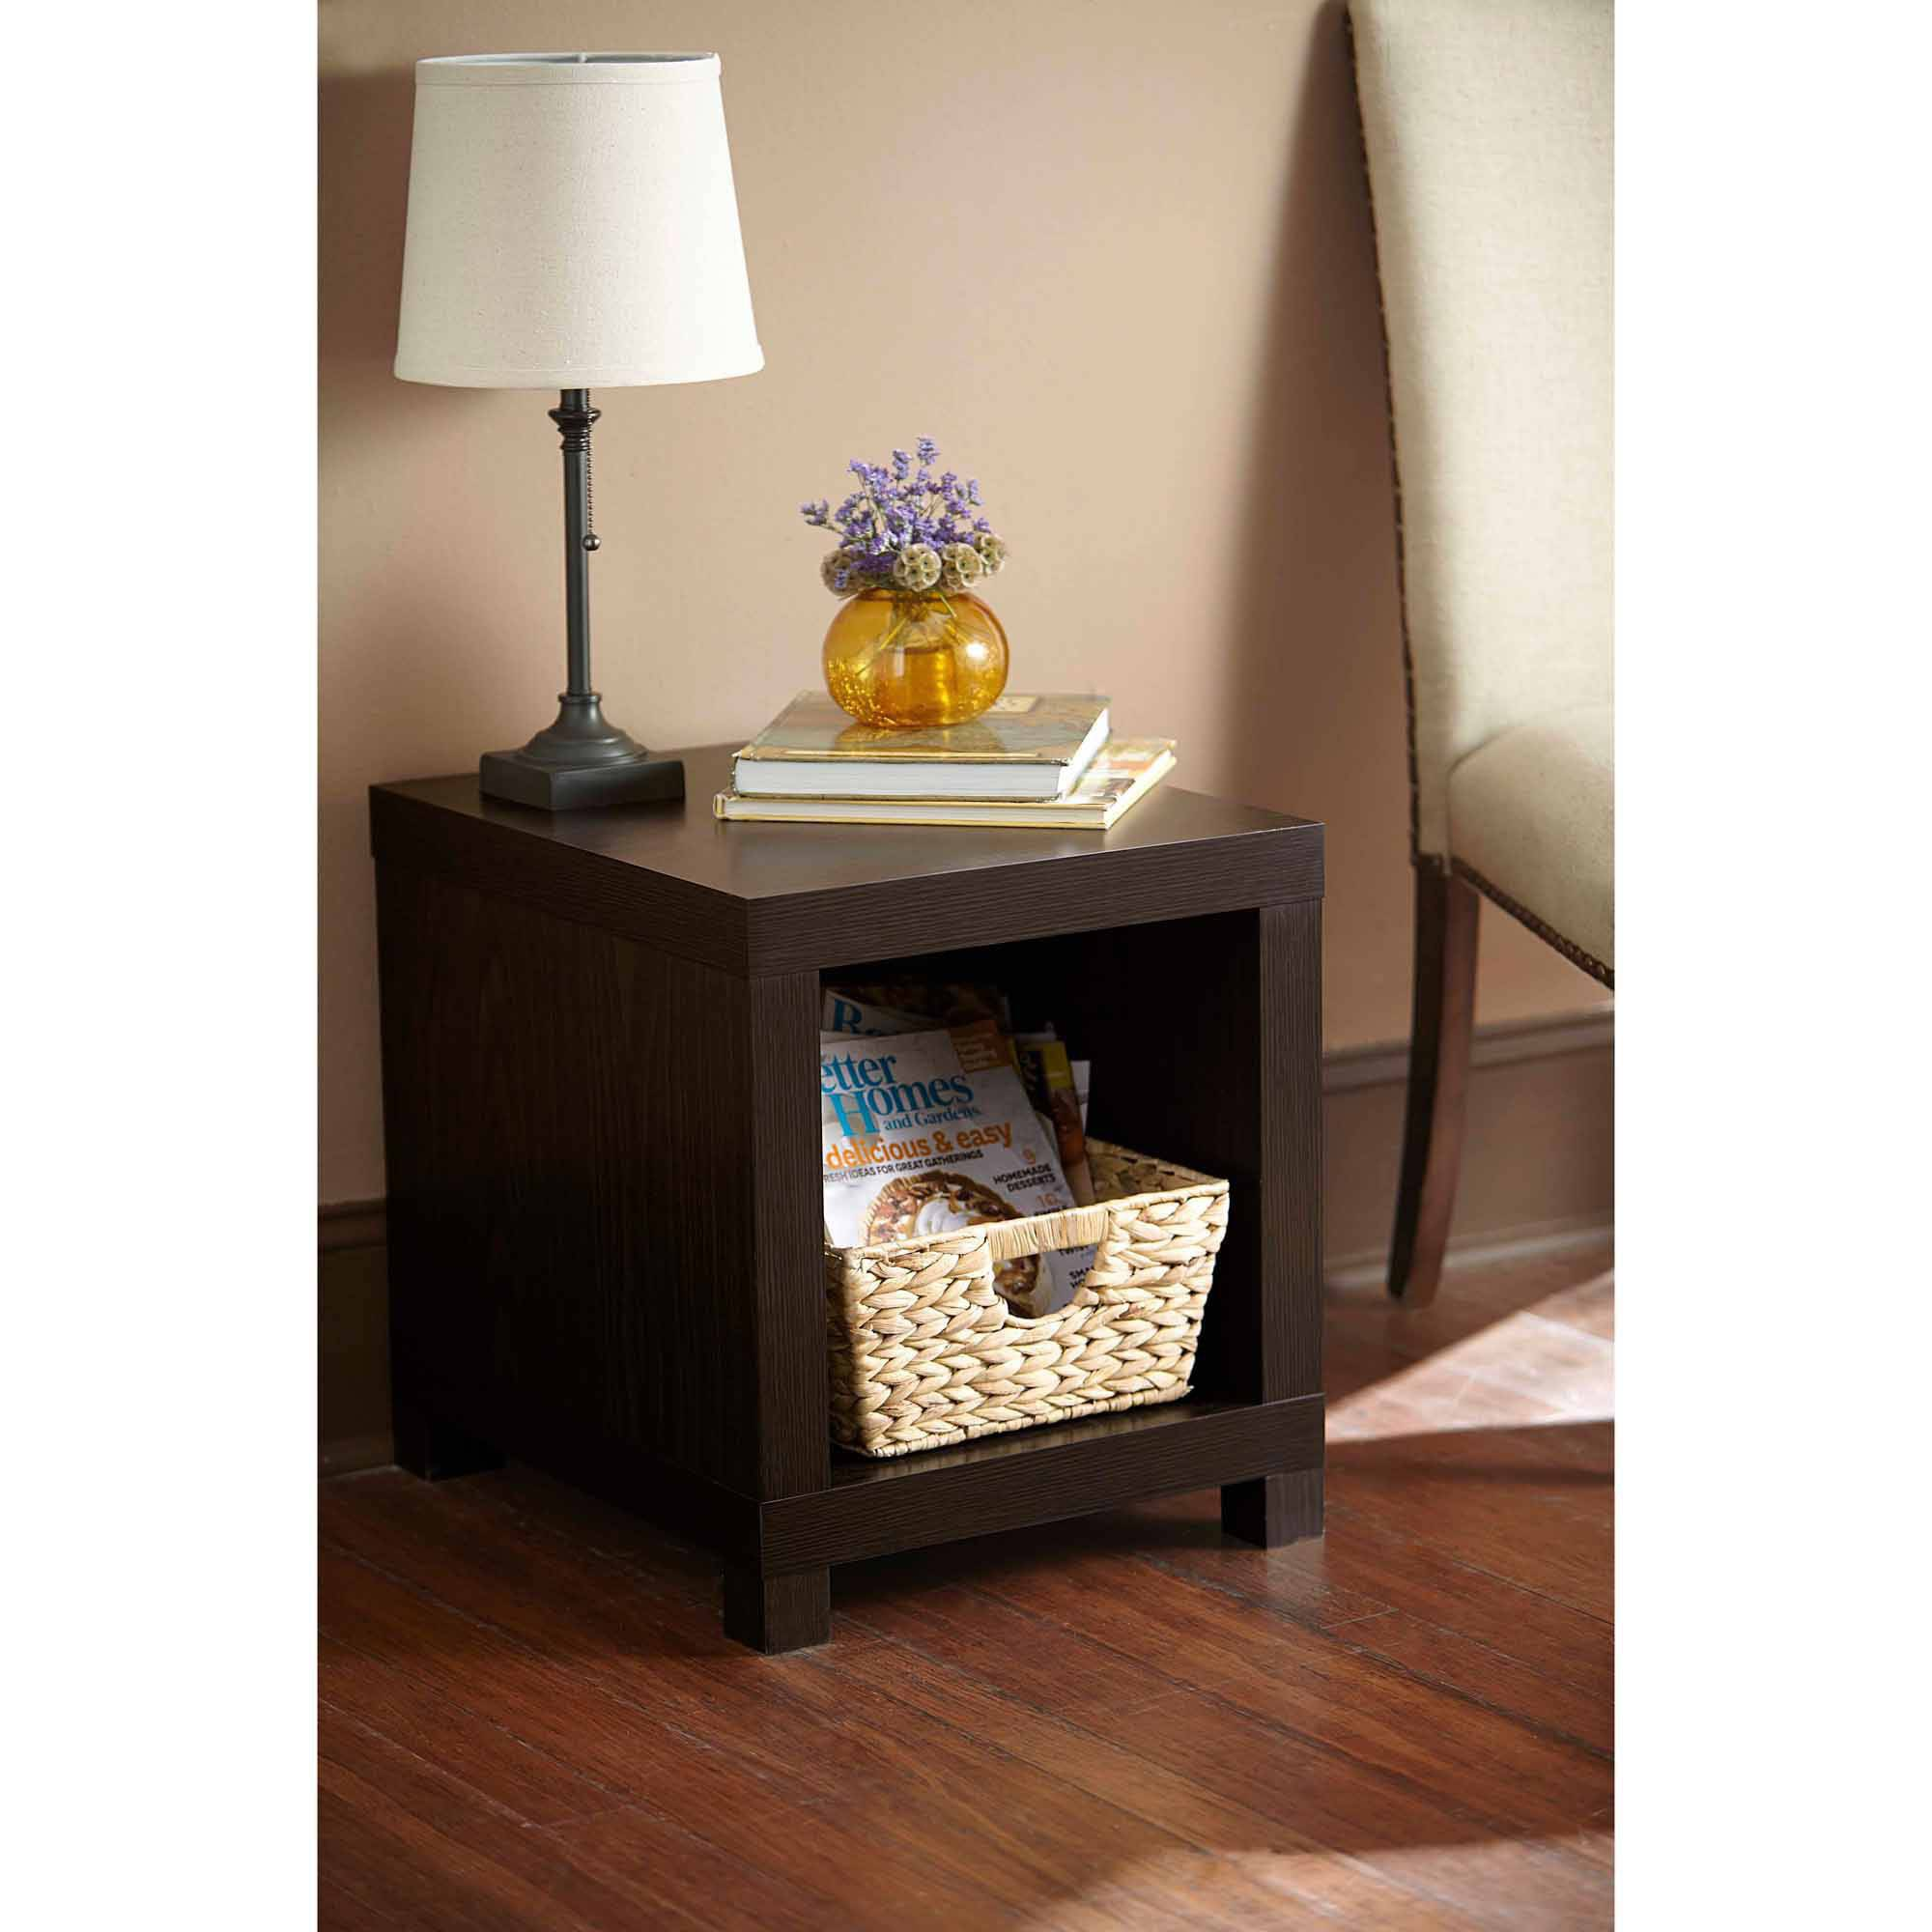 better homes gardens accent table multiple colors white nursery coffee with wood and metal farmhouse style dining room small bedside lamps threshold cabinet your focus runner